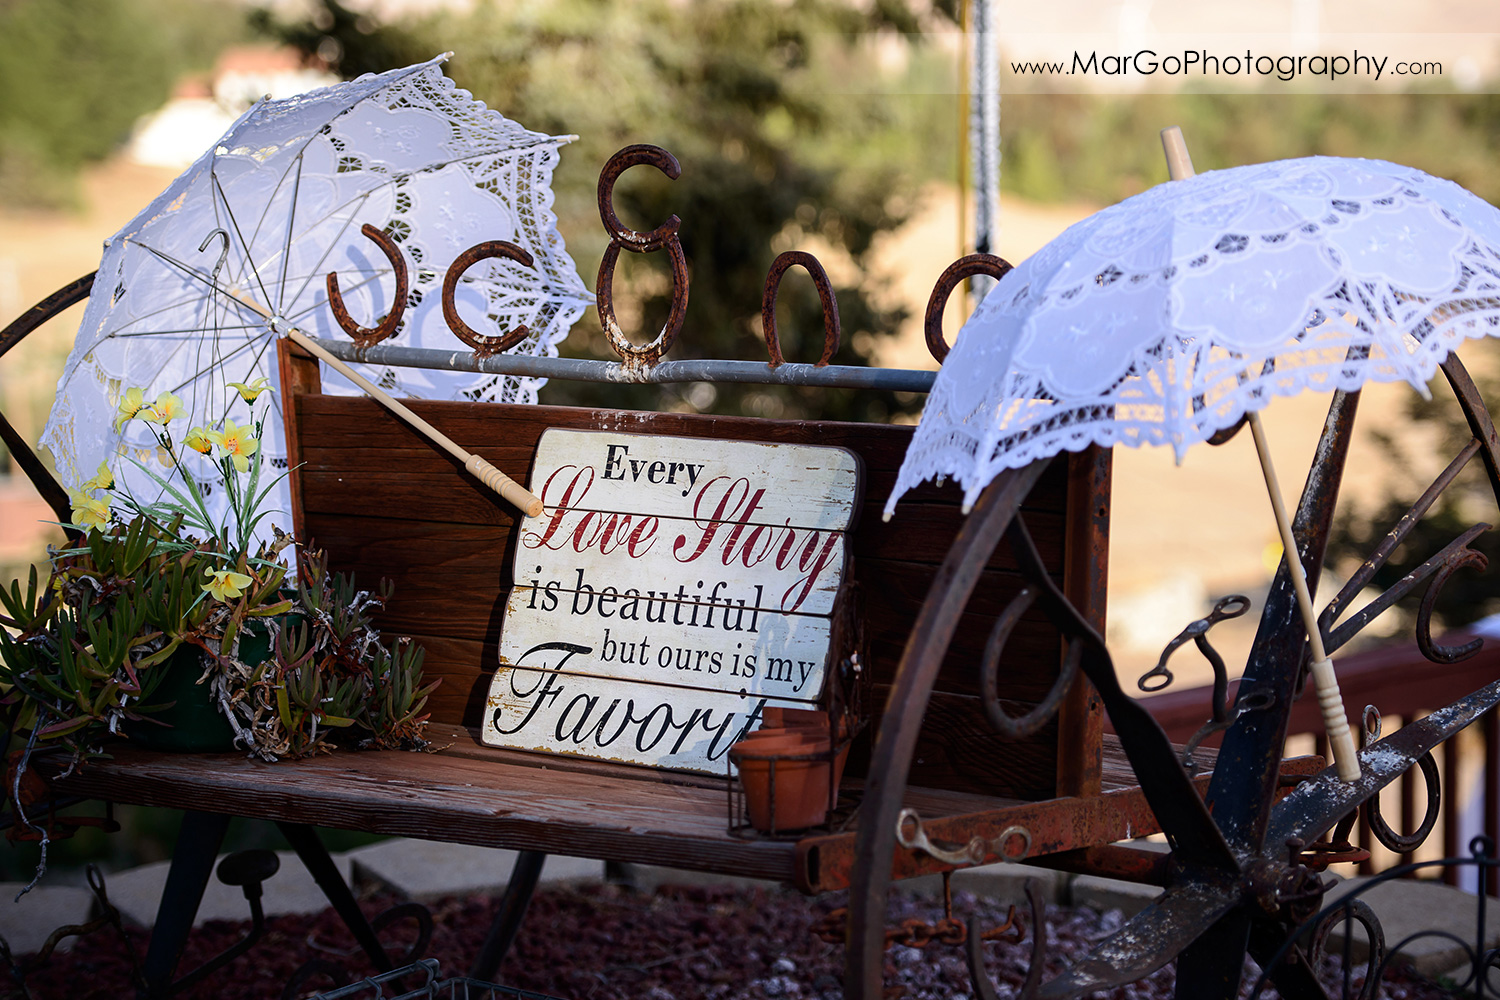 wedding ceemony decor made of wooden sign and two white umbrellas